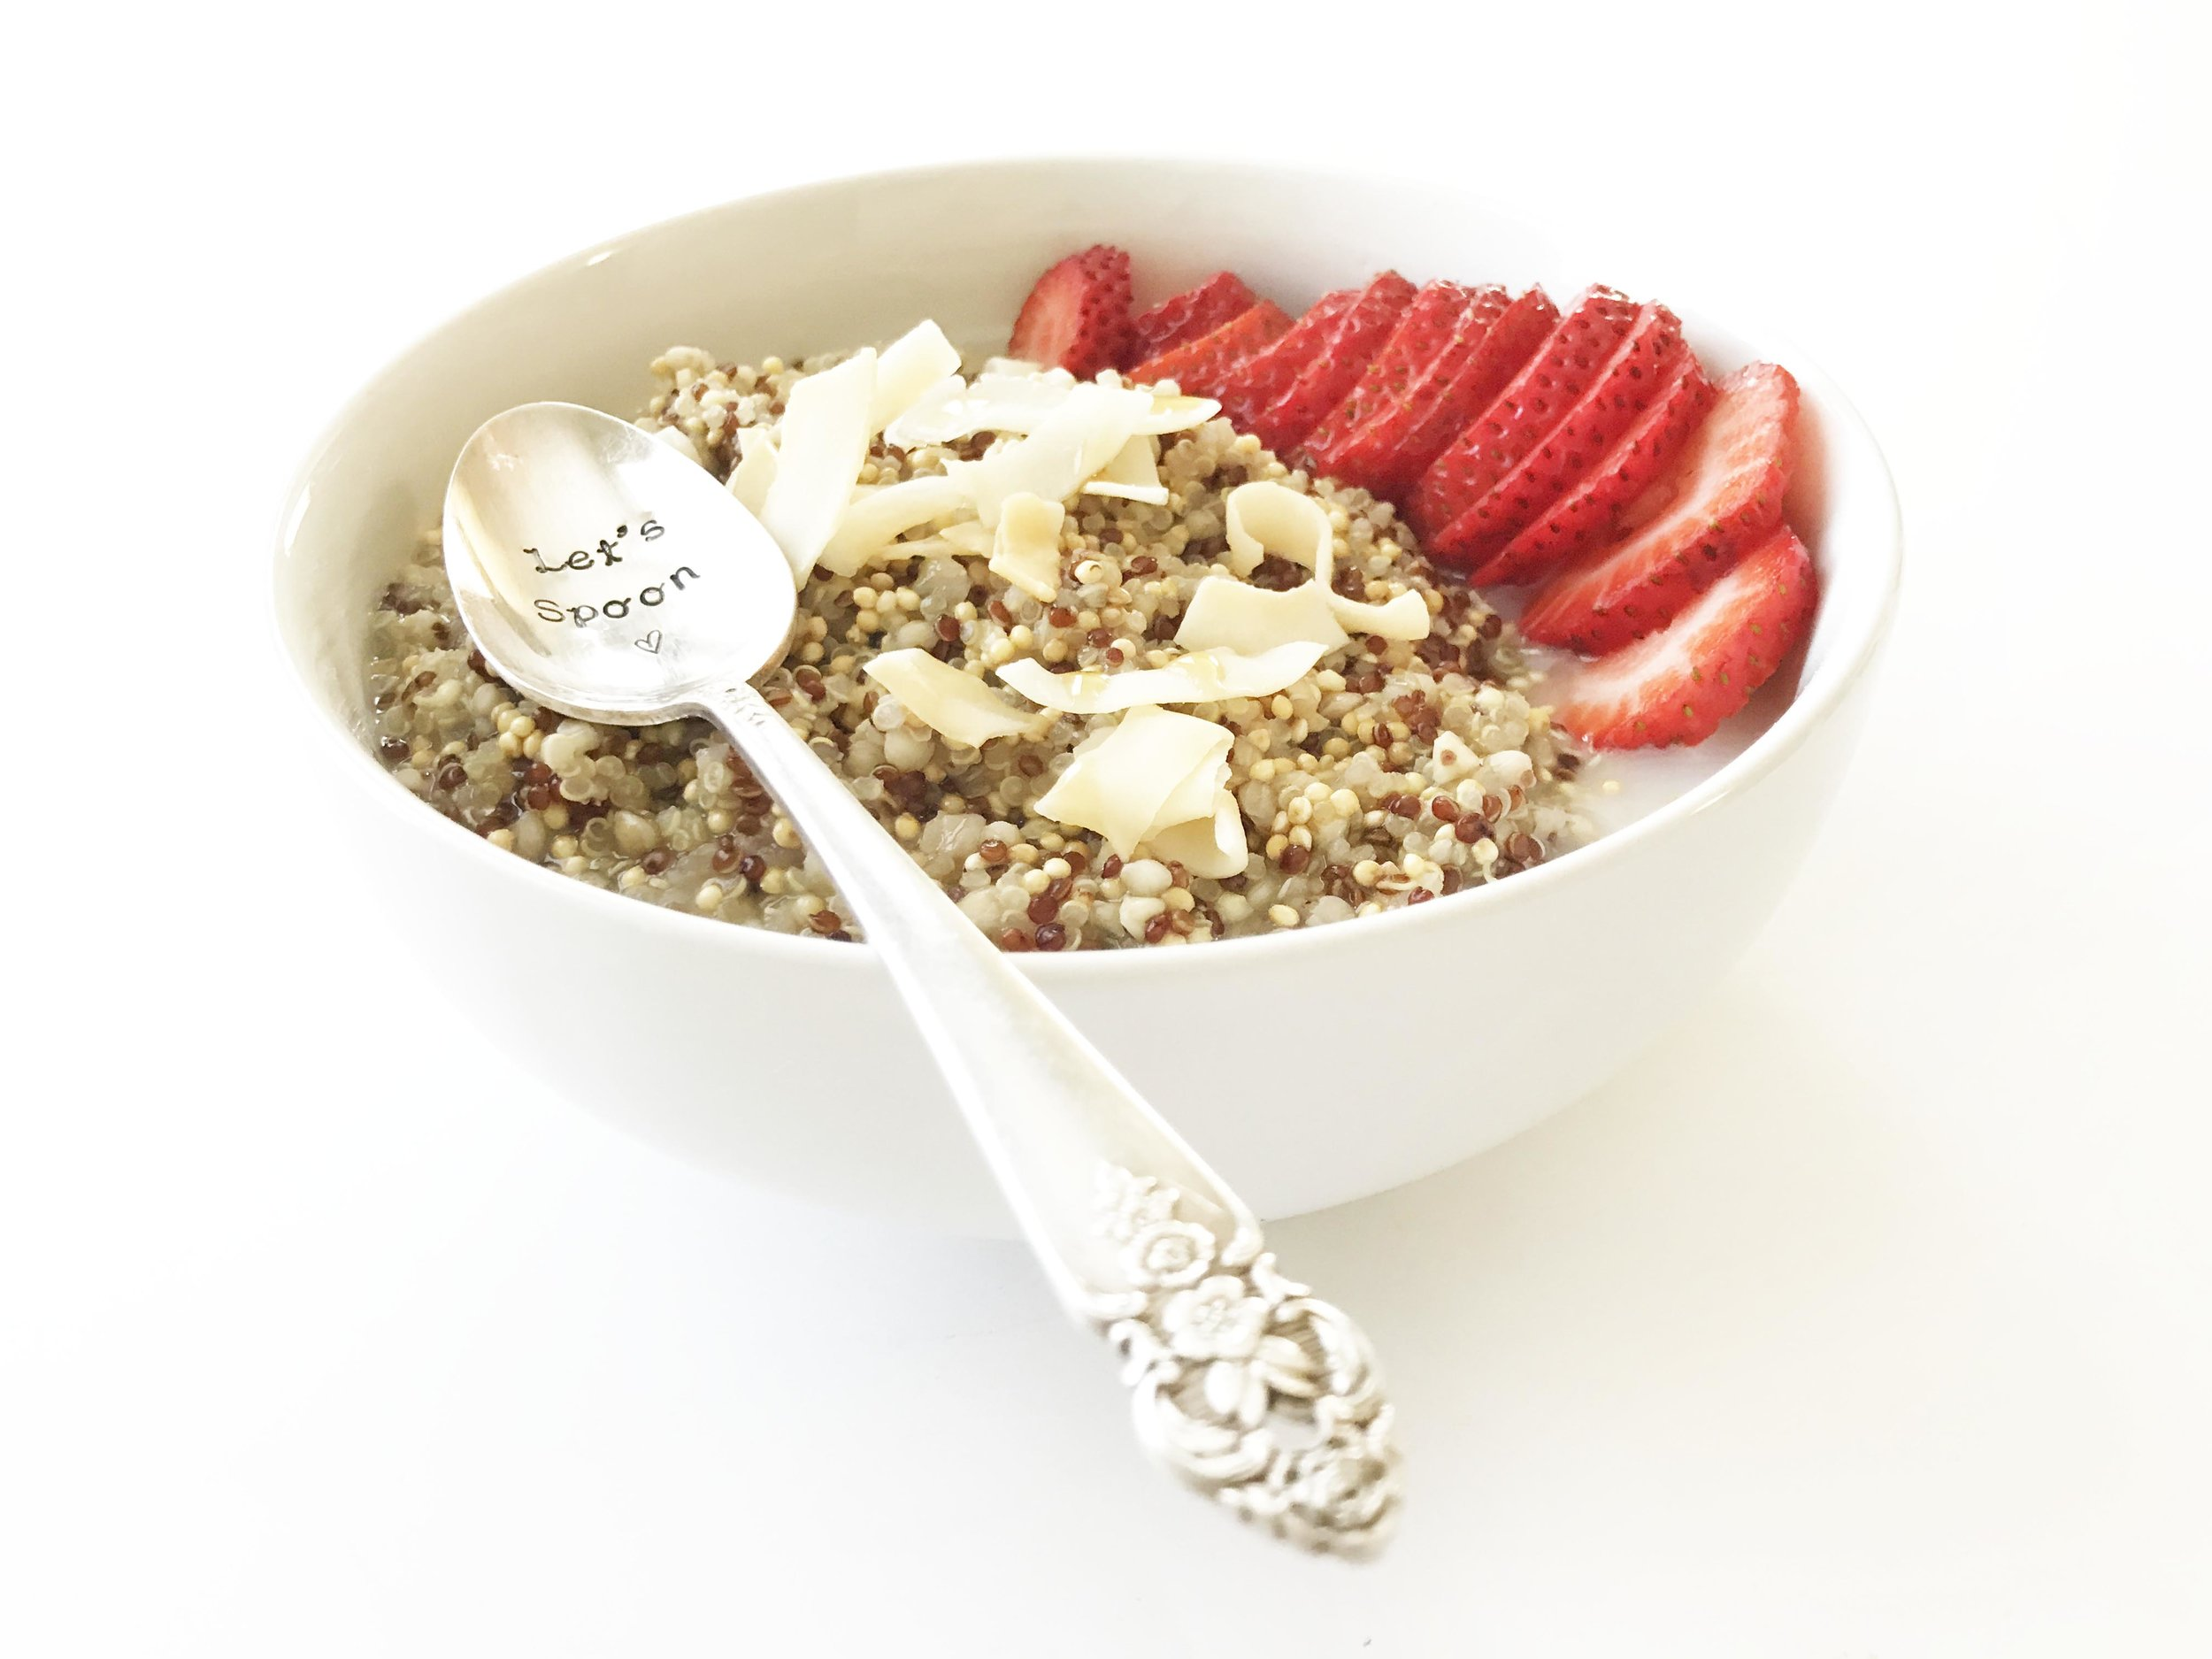 strawberry-coconut-cereal2.jpg